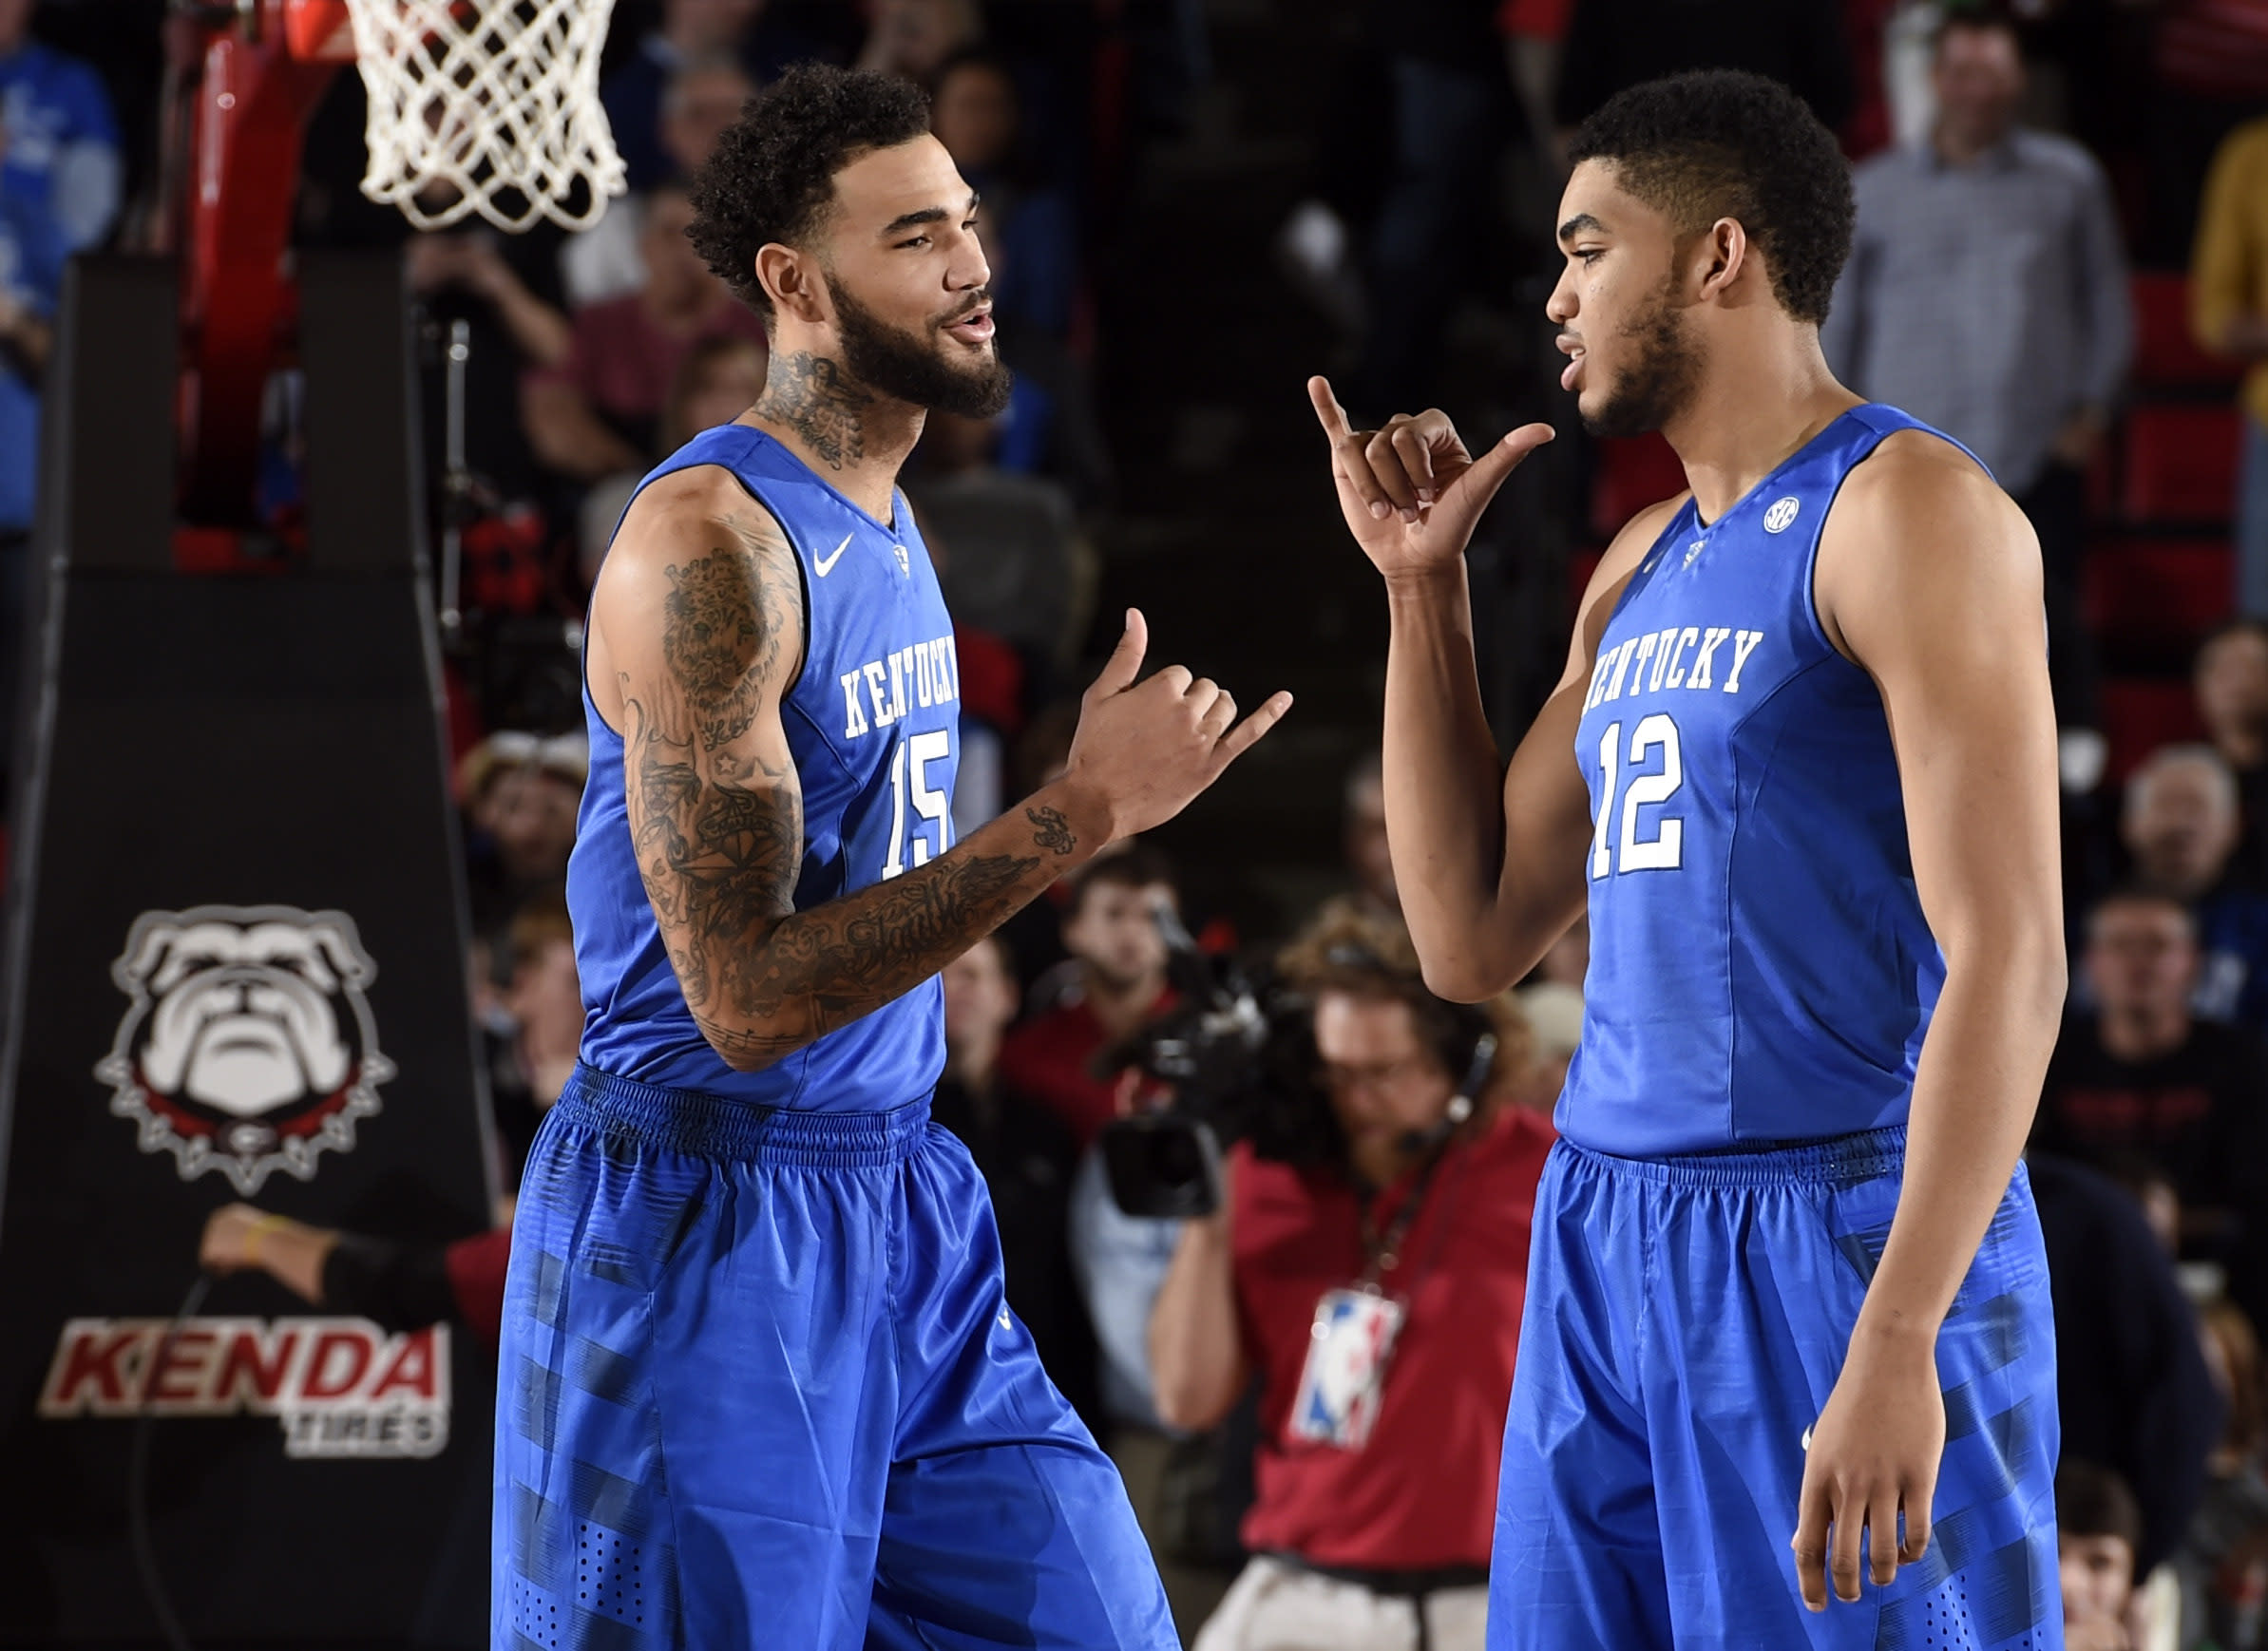 The Undefeated Kentucky Wildcats: The 20 College Basketball Teams That Most Need To Win This